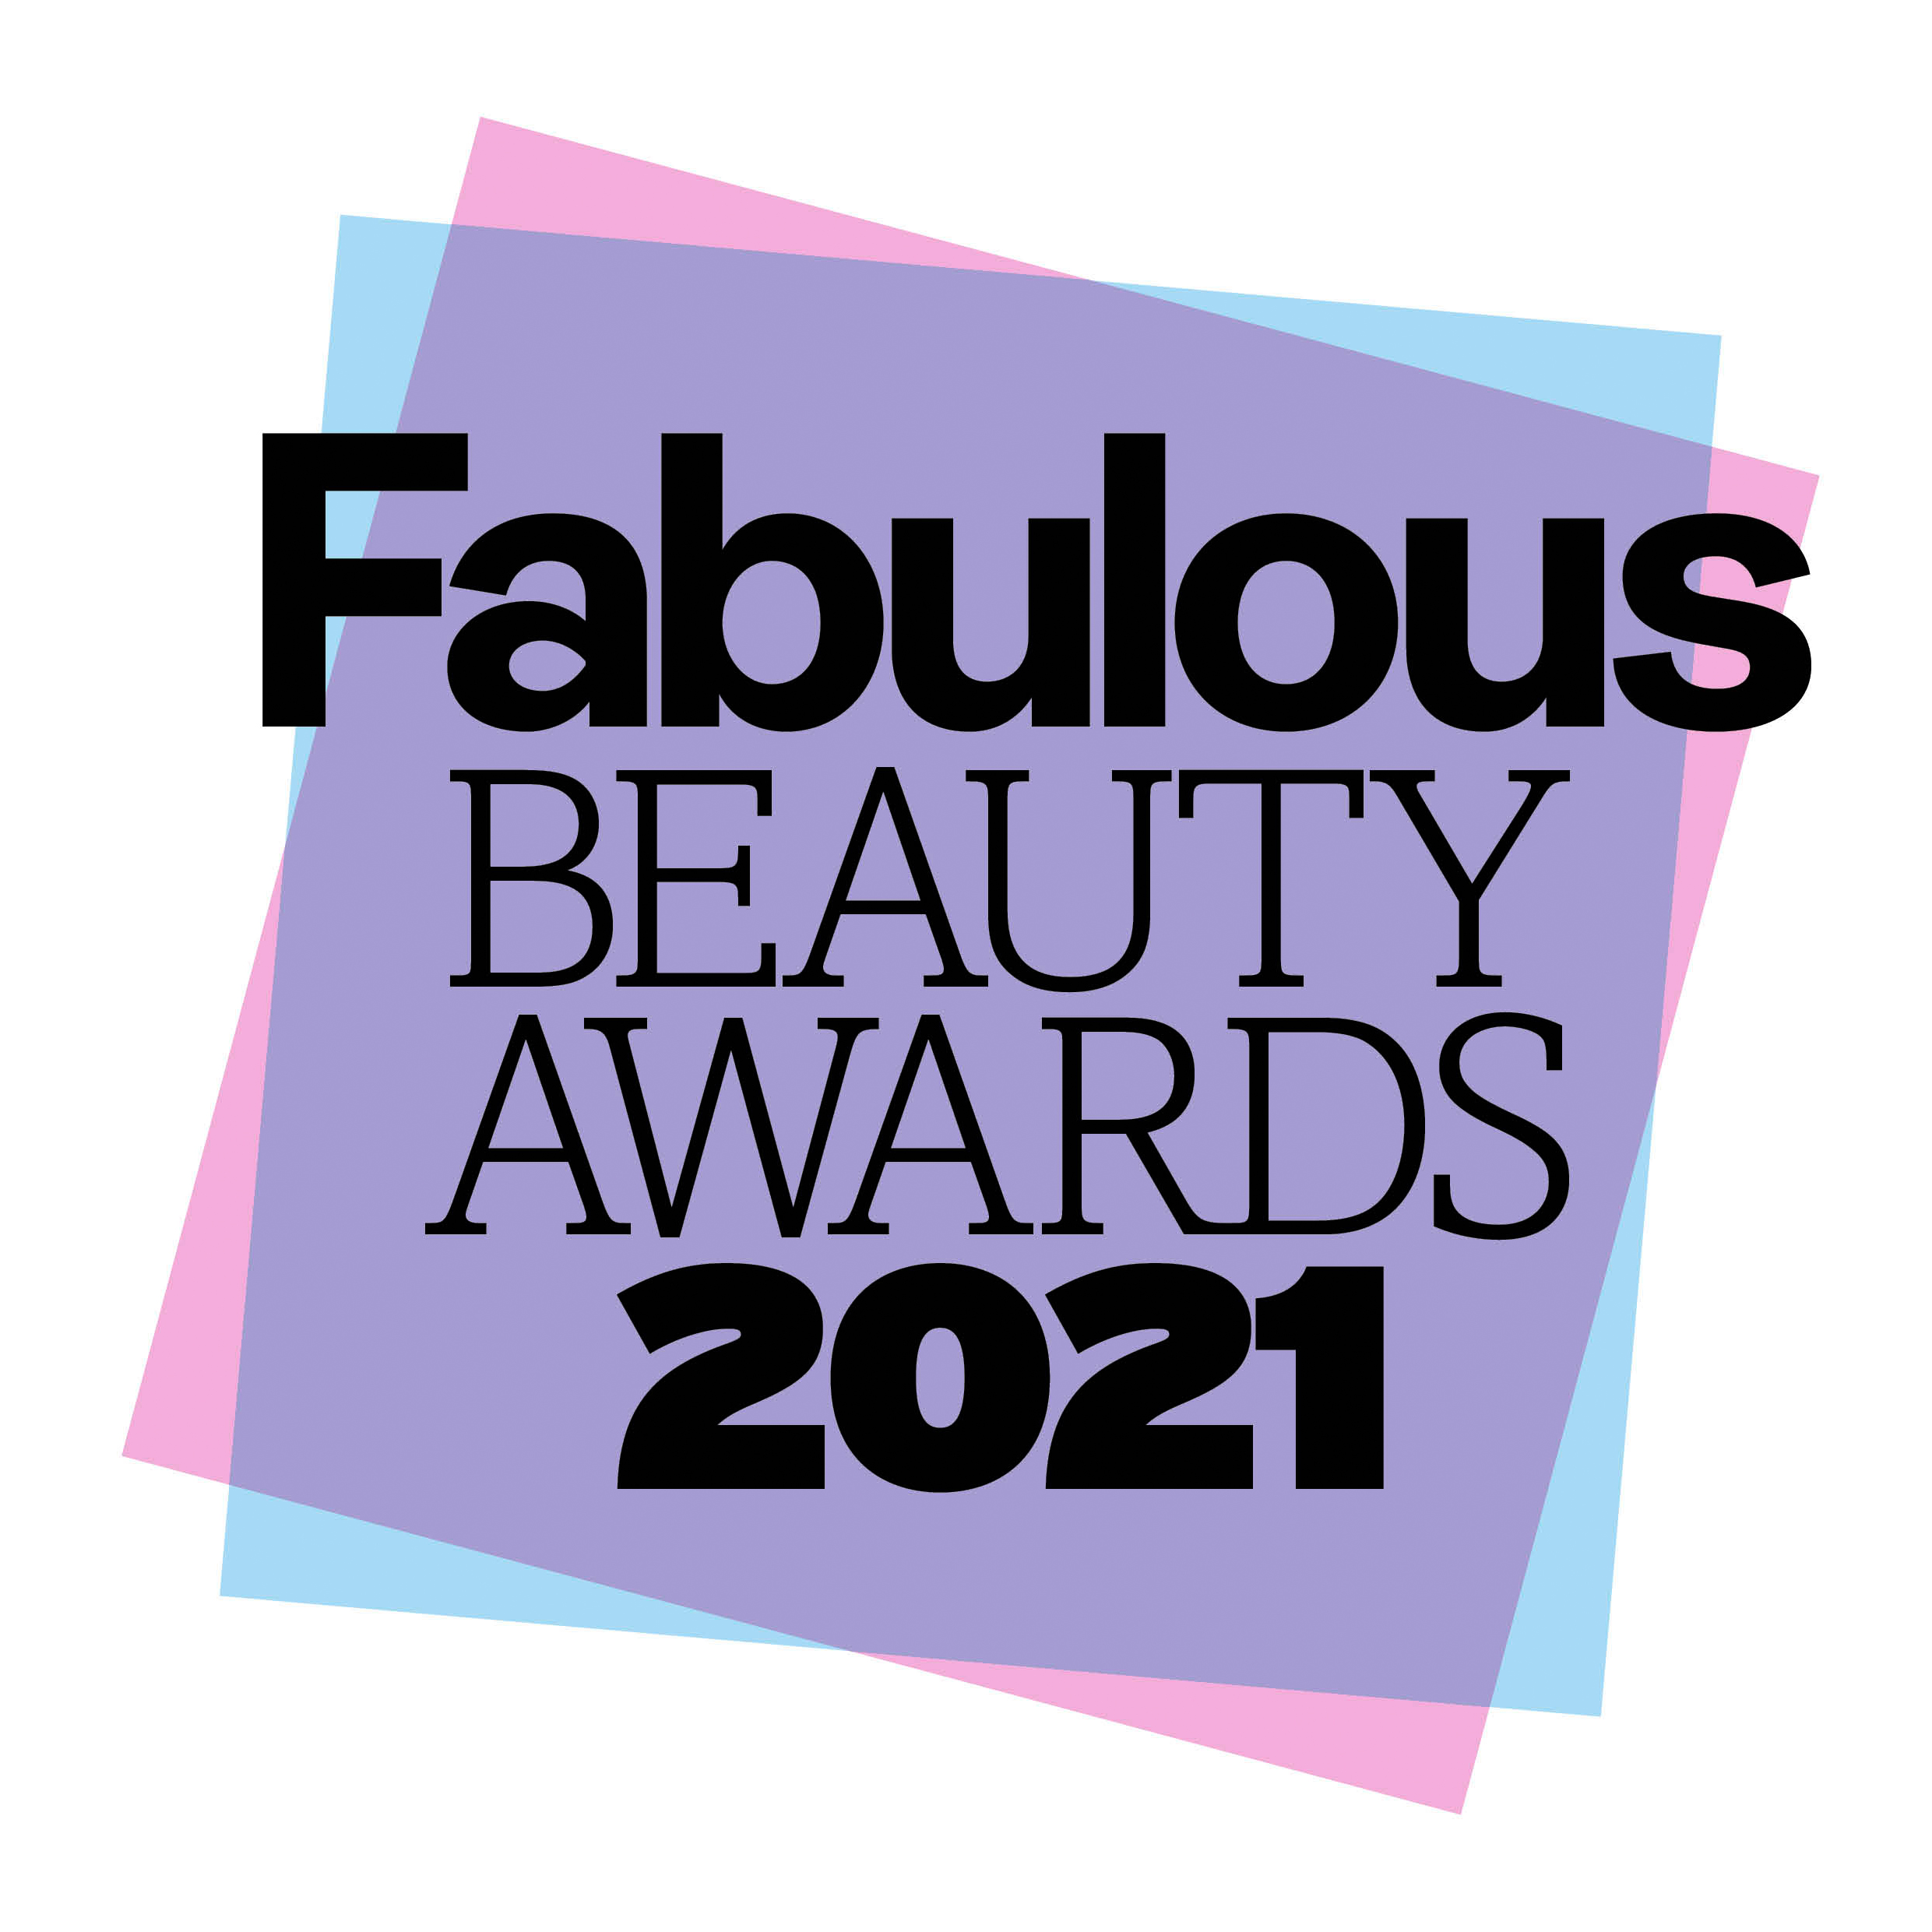 Fabulous Beauty Awards 2021